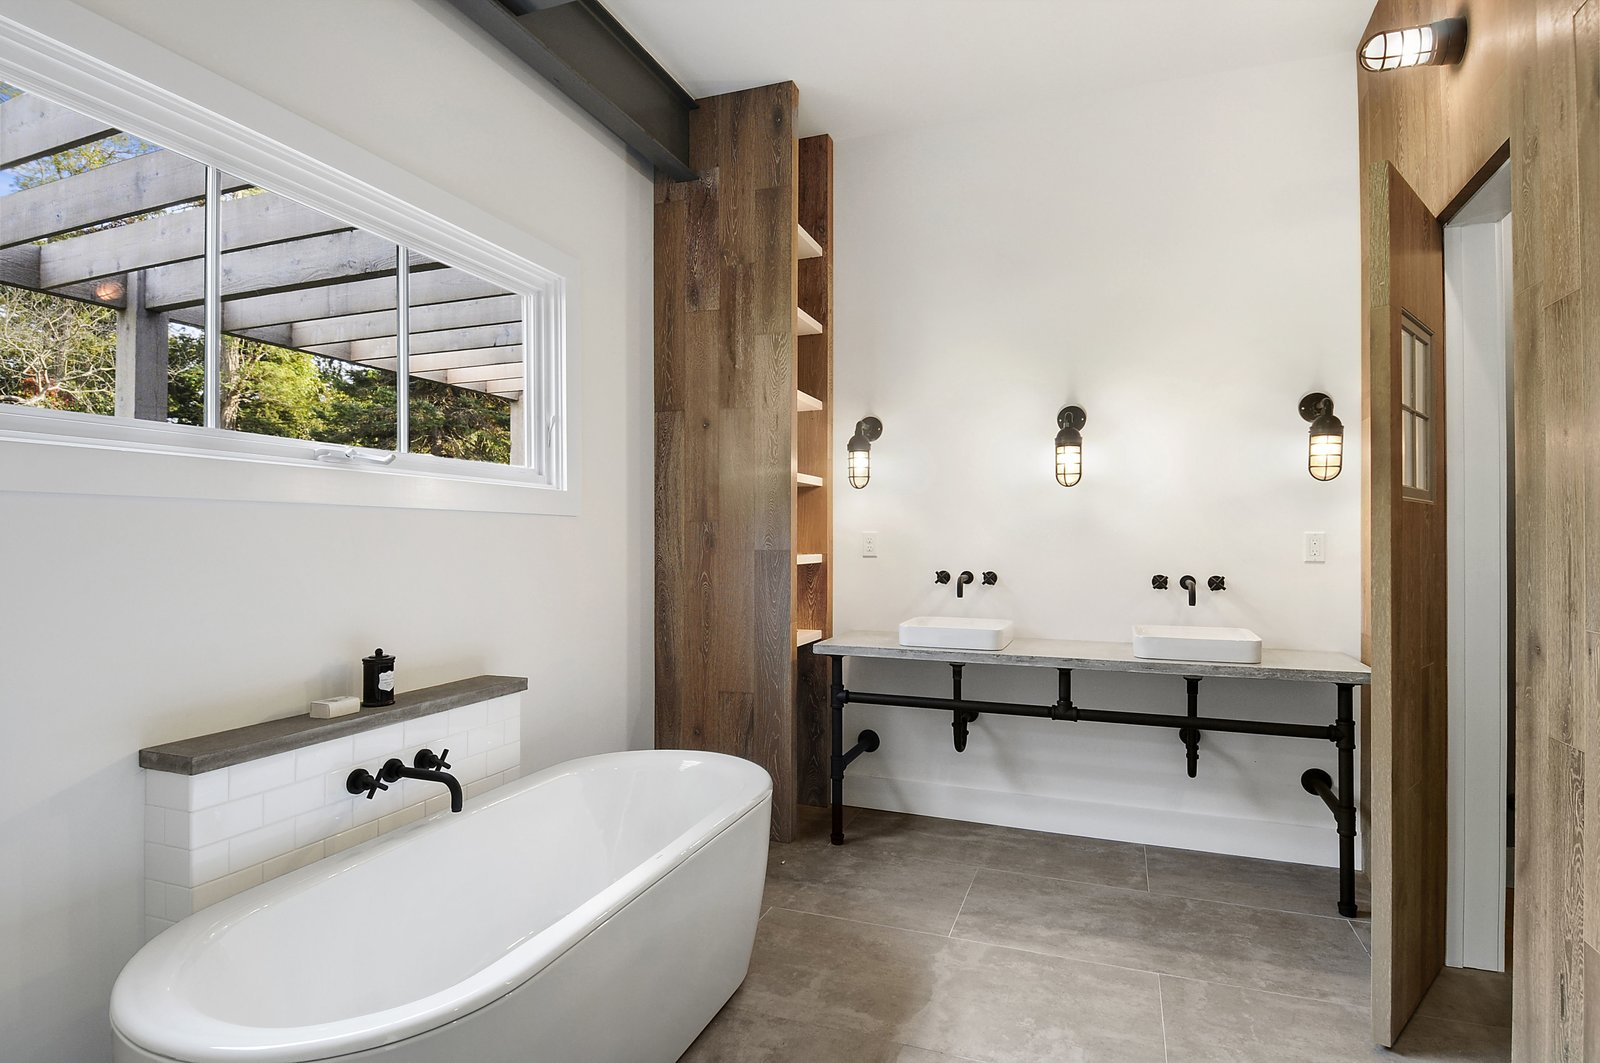 Bath Room, Concrete Counter, Porcelain Tile Floor, Vessel Sink, Freestanding Tub, Enclosed Shower, Accent Lighting, Wall Lighting, and Ceiling Lighting  North Haven Compound